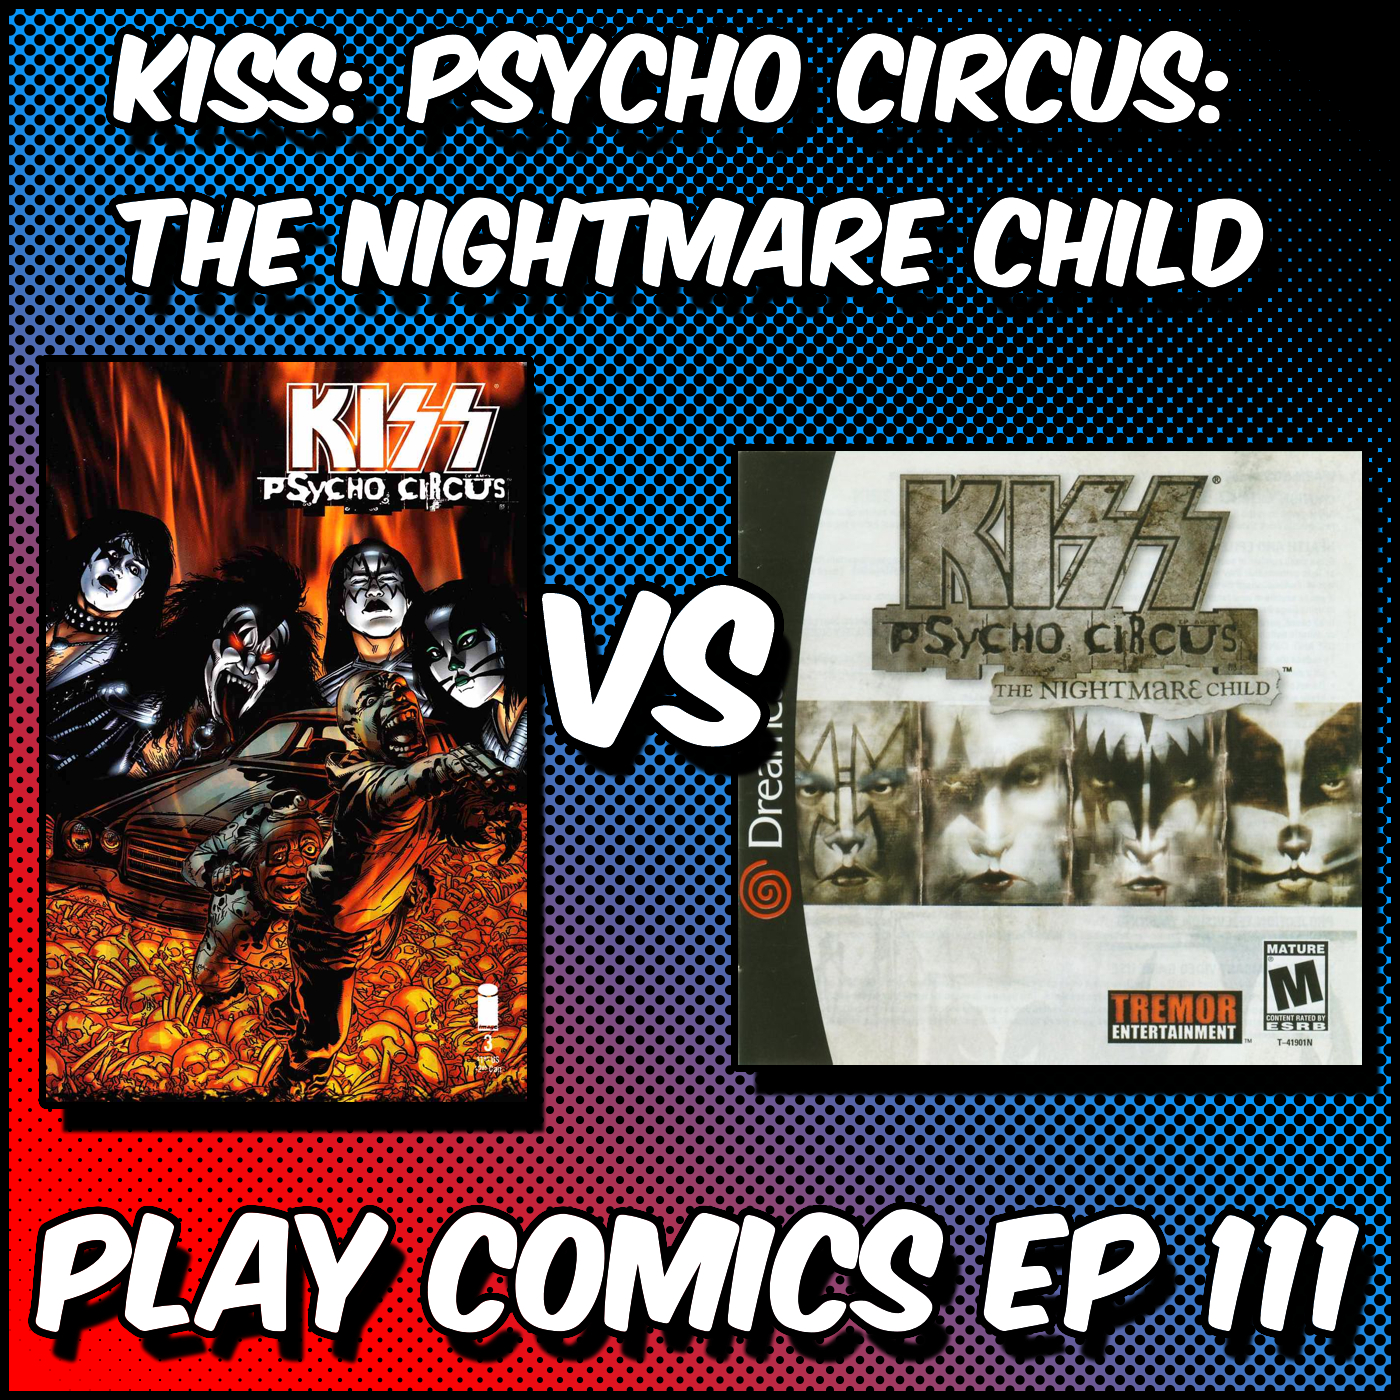 Kiss: Psycho Circus: The Nightmare Child with Scarlett O'Dell (Gatecrashers)